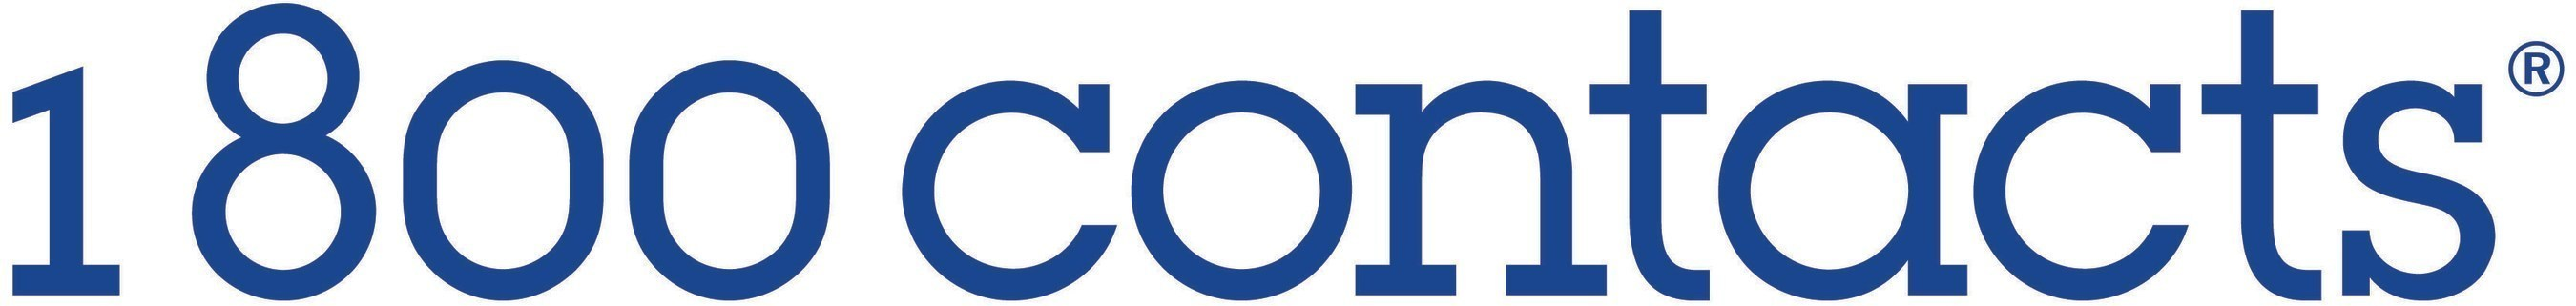 1 800 contacts logo